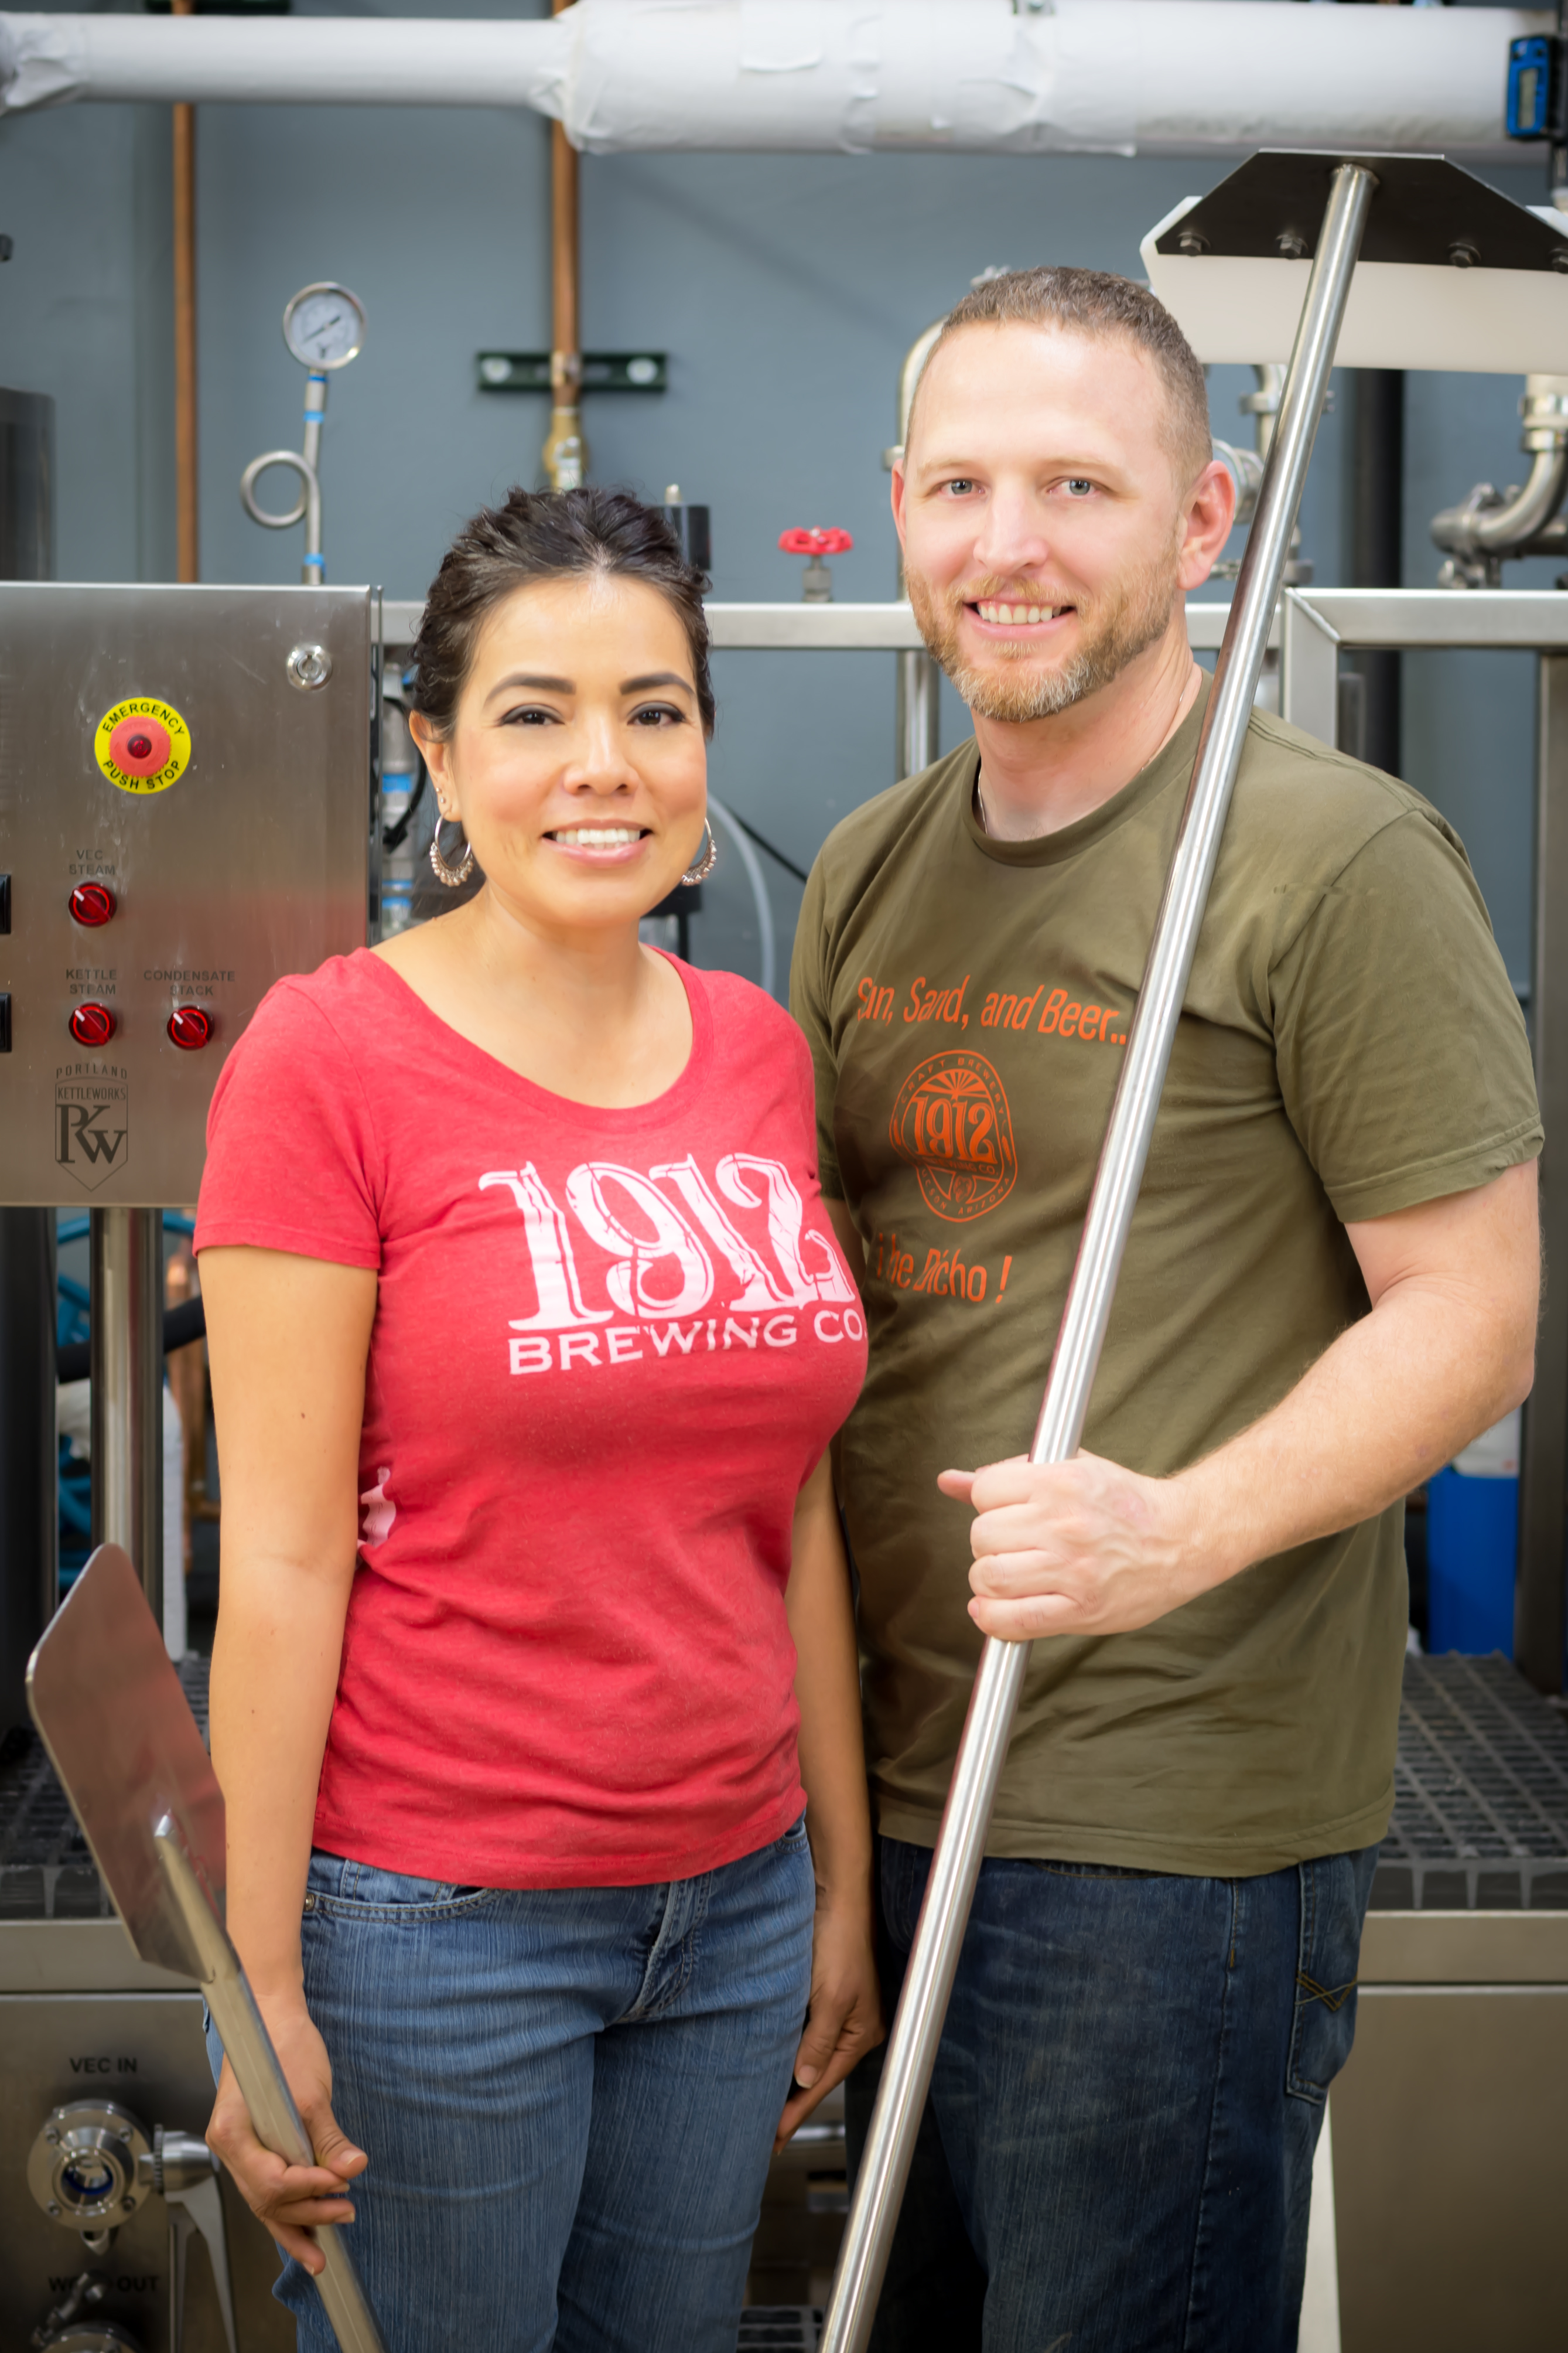 Allan and Alicia Conger - Owners of 1912 Brewing